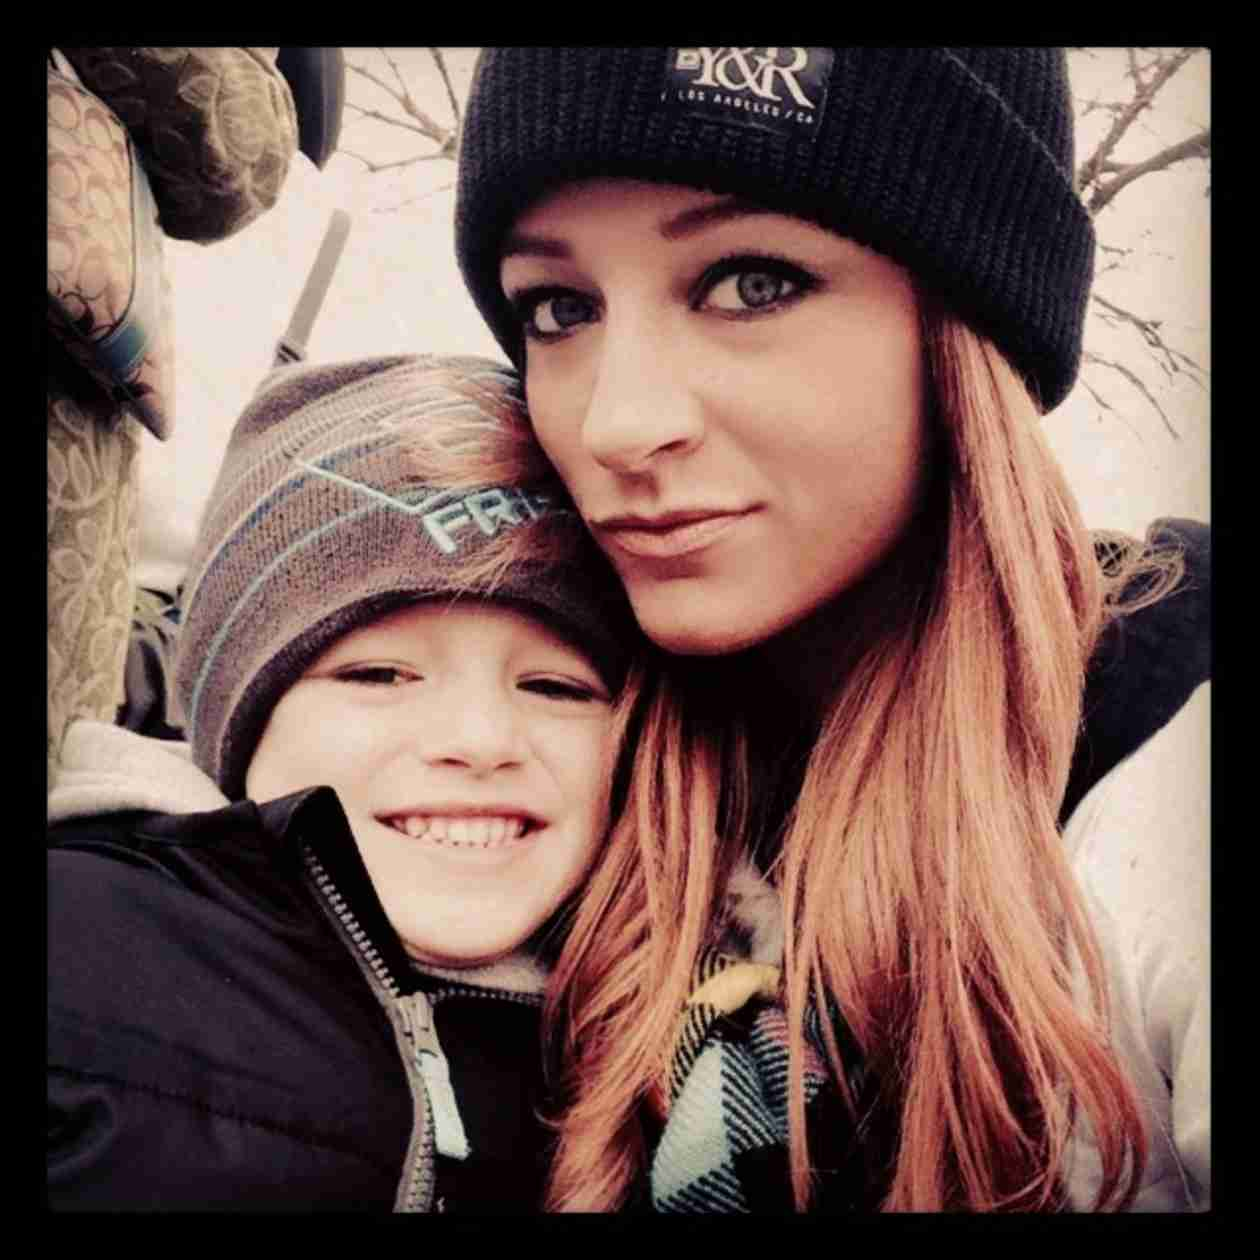 Maci Bookout Owes the IRS $78k in Back-Taxes — Report